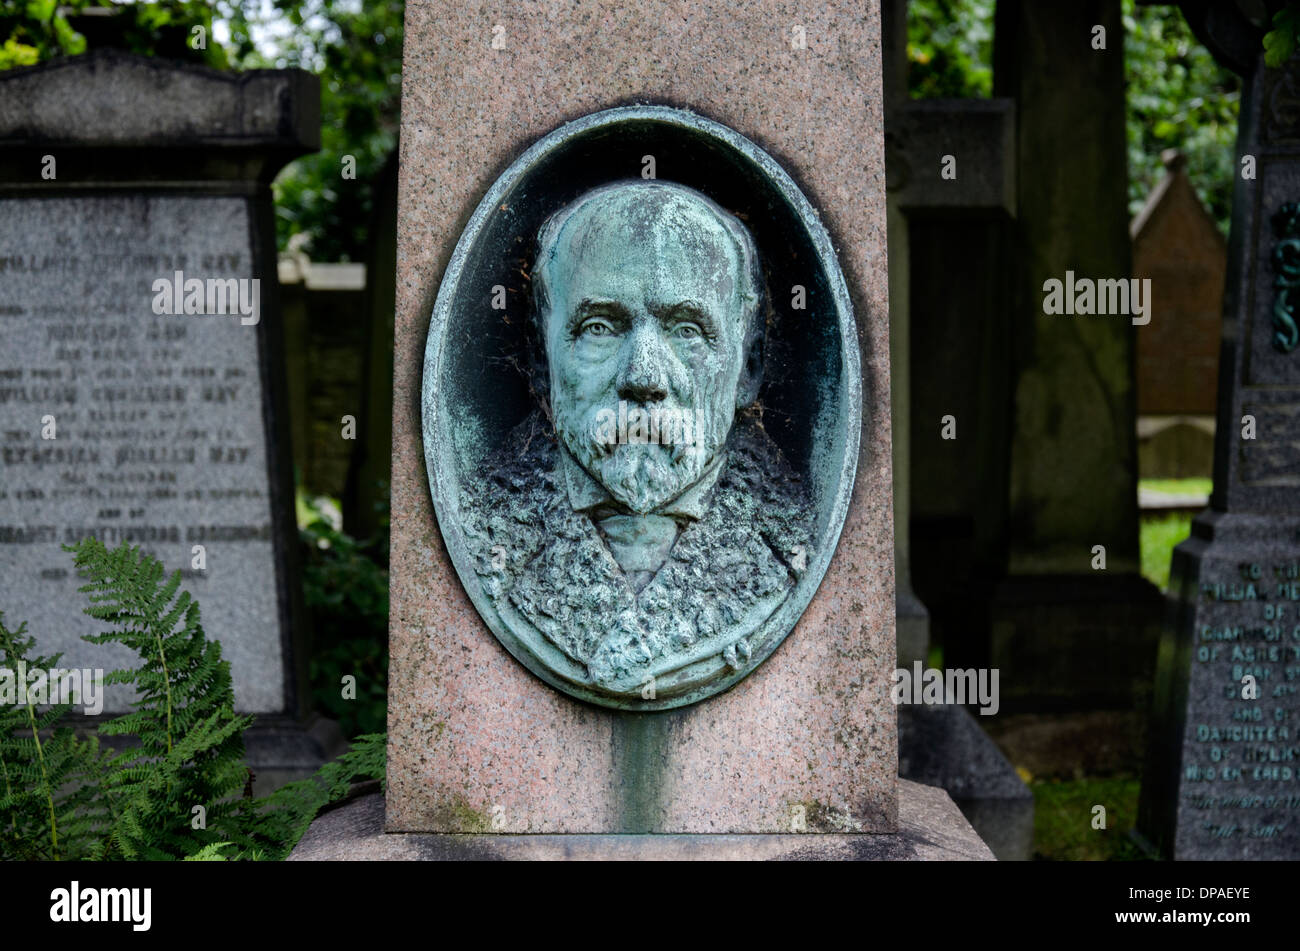 Detail from the Grave of John Anderson (4 October 1833 – 15 August 1900) who was a Scottish anatomist and zoologist. - Stock Image